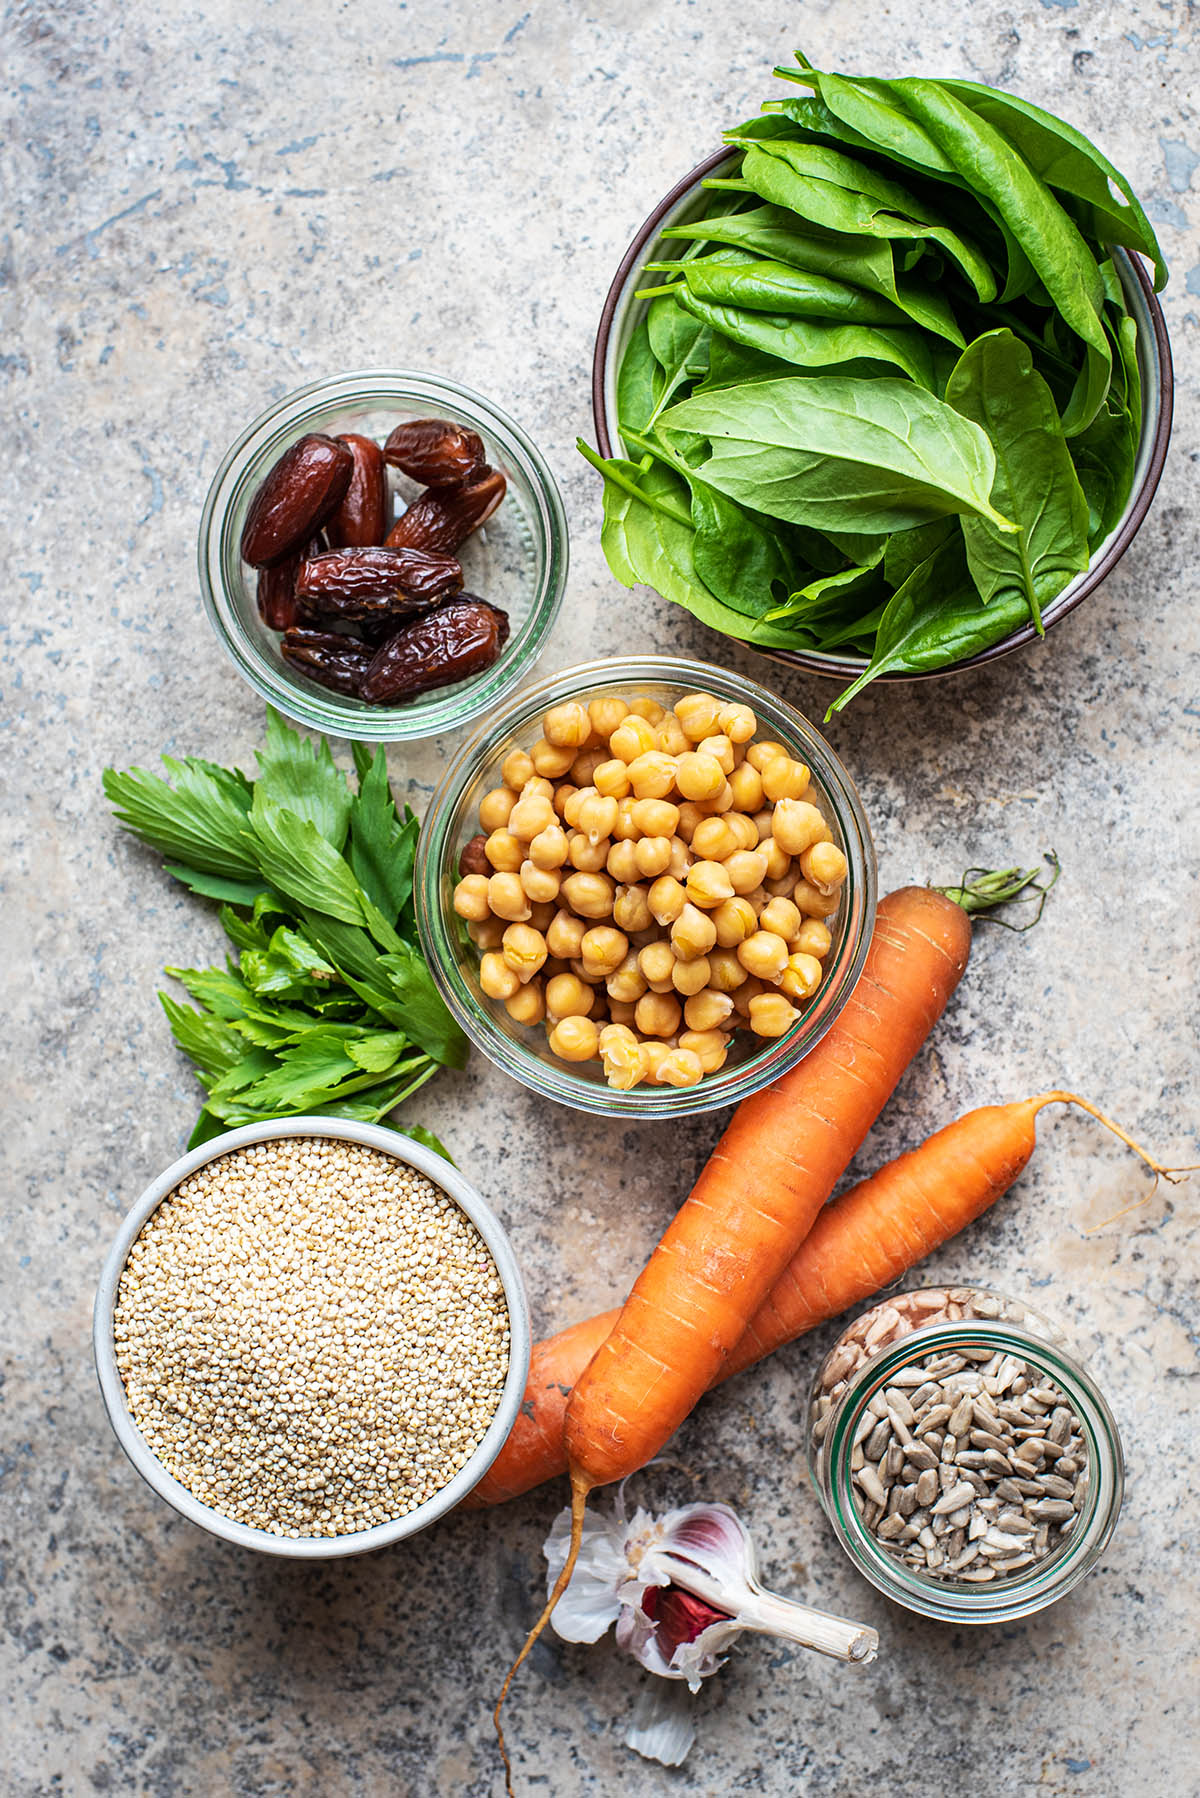 Moroccan carrot salad ingredients.